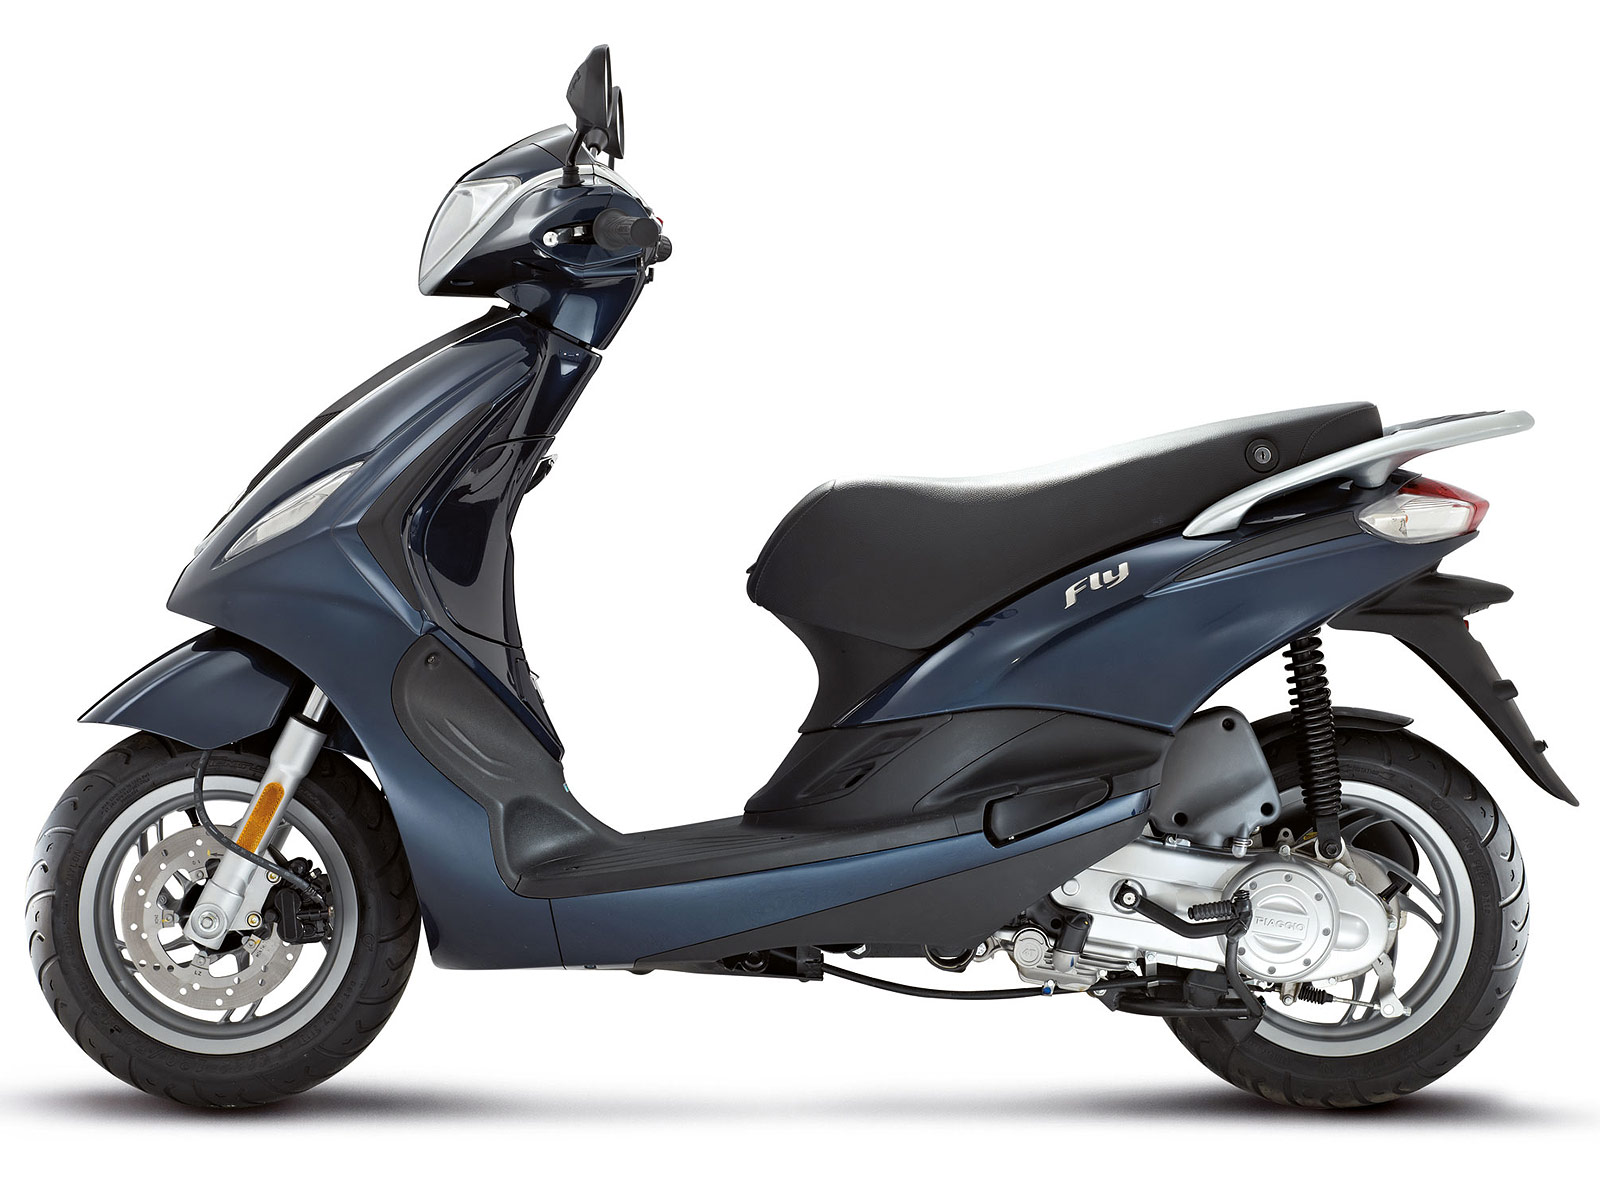 2013 piaggio fly 50 4v scooter pictures specifications. Black Bedroom Furniture Sets. Home Design Ideas